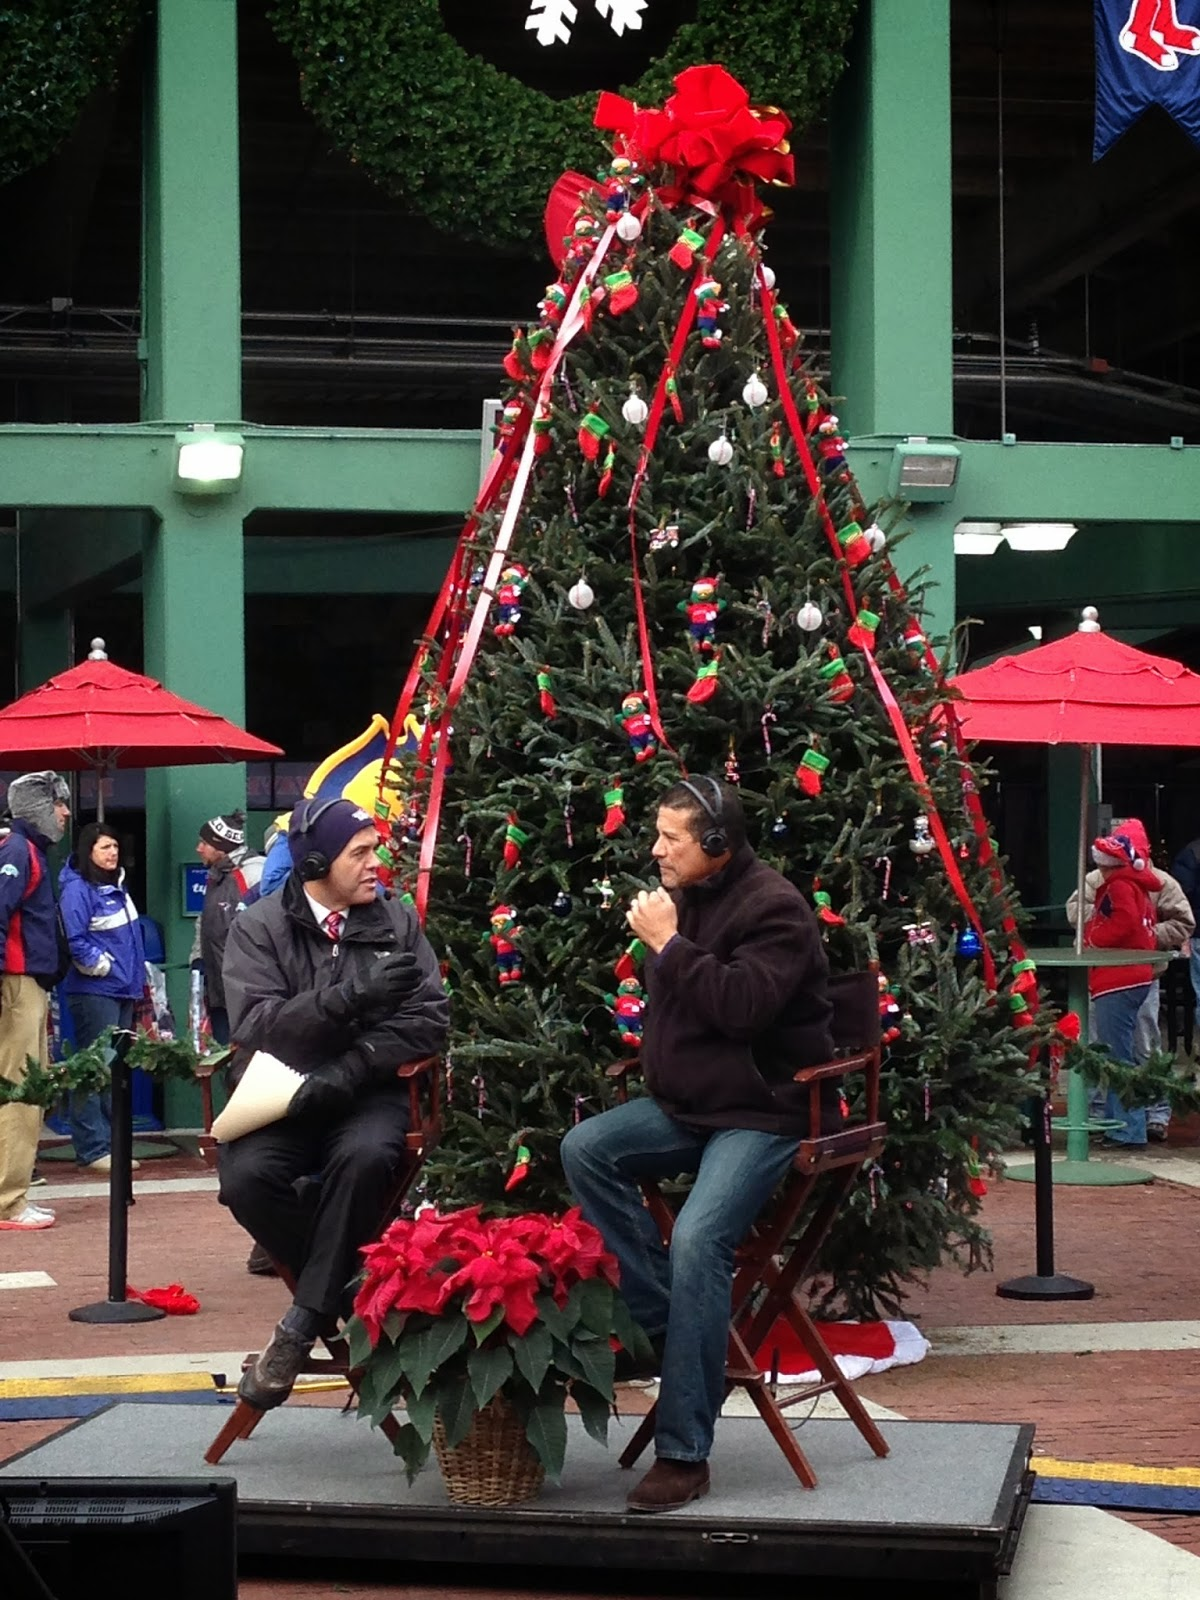 Christmas at Fenway Park brings hundreds to Boston | RedSoxLife ...